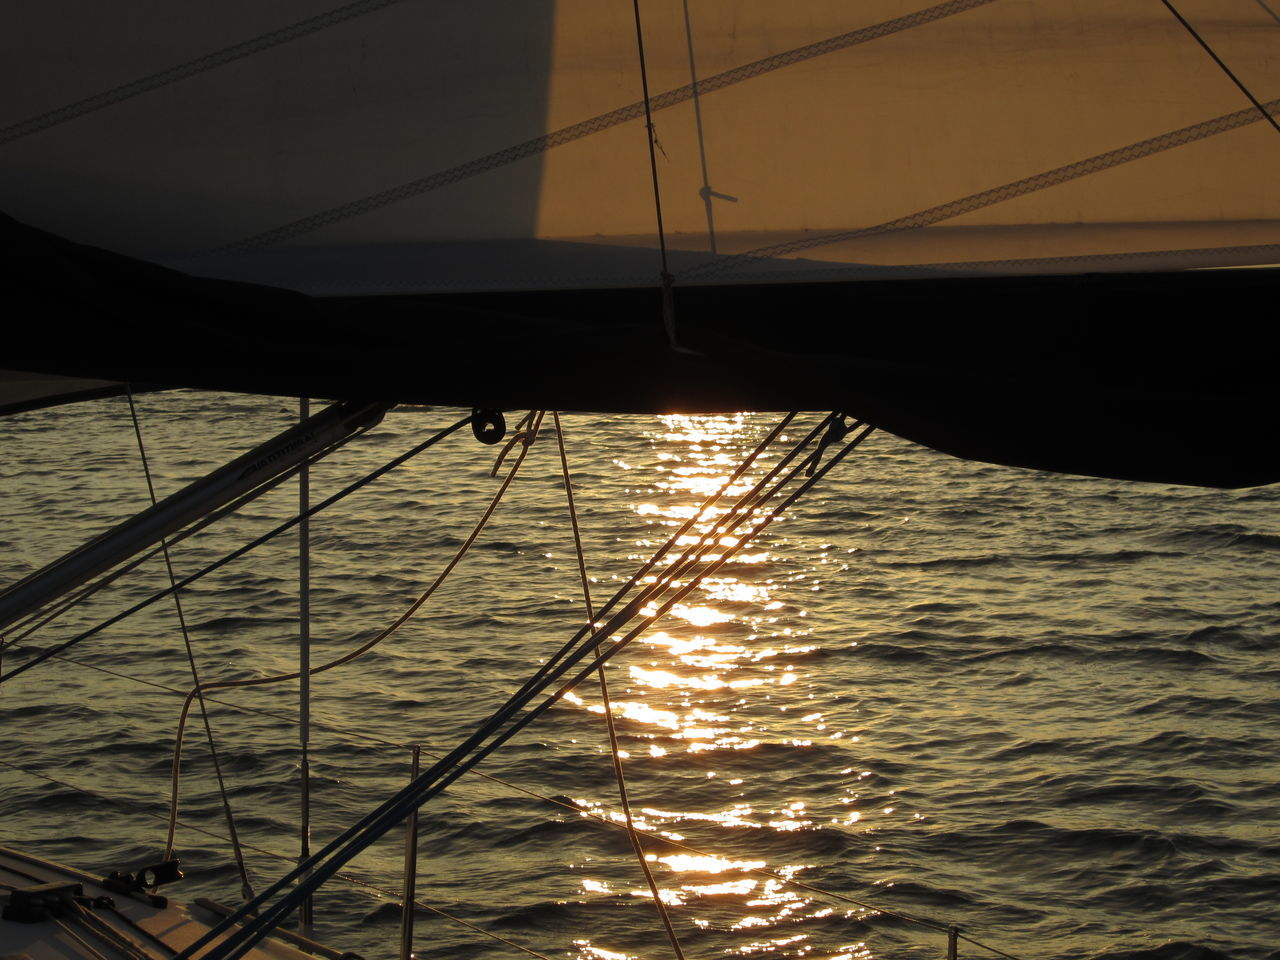 sea, water, nautical vessel, sailing, sunset, nature, transportation, sailboat, mode of transport, outdoors, no people, waterfront, sky, sunlight, beauty in nature, silhouette, mast, scenics, sailing ship, yacht, day, yachting